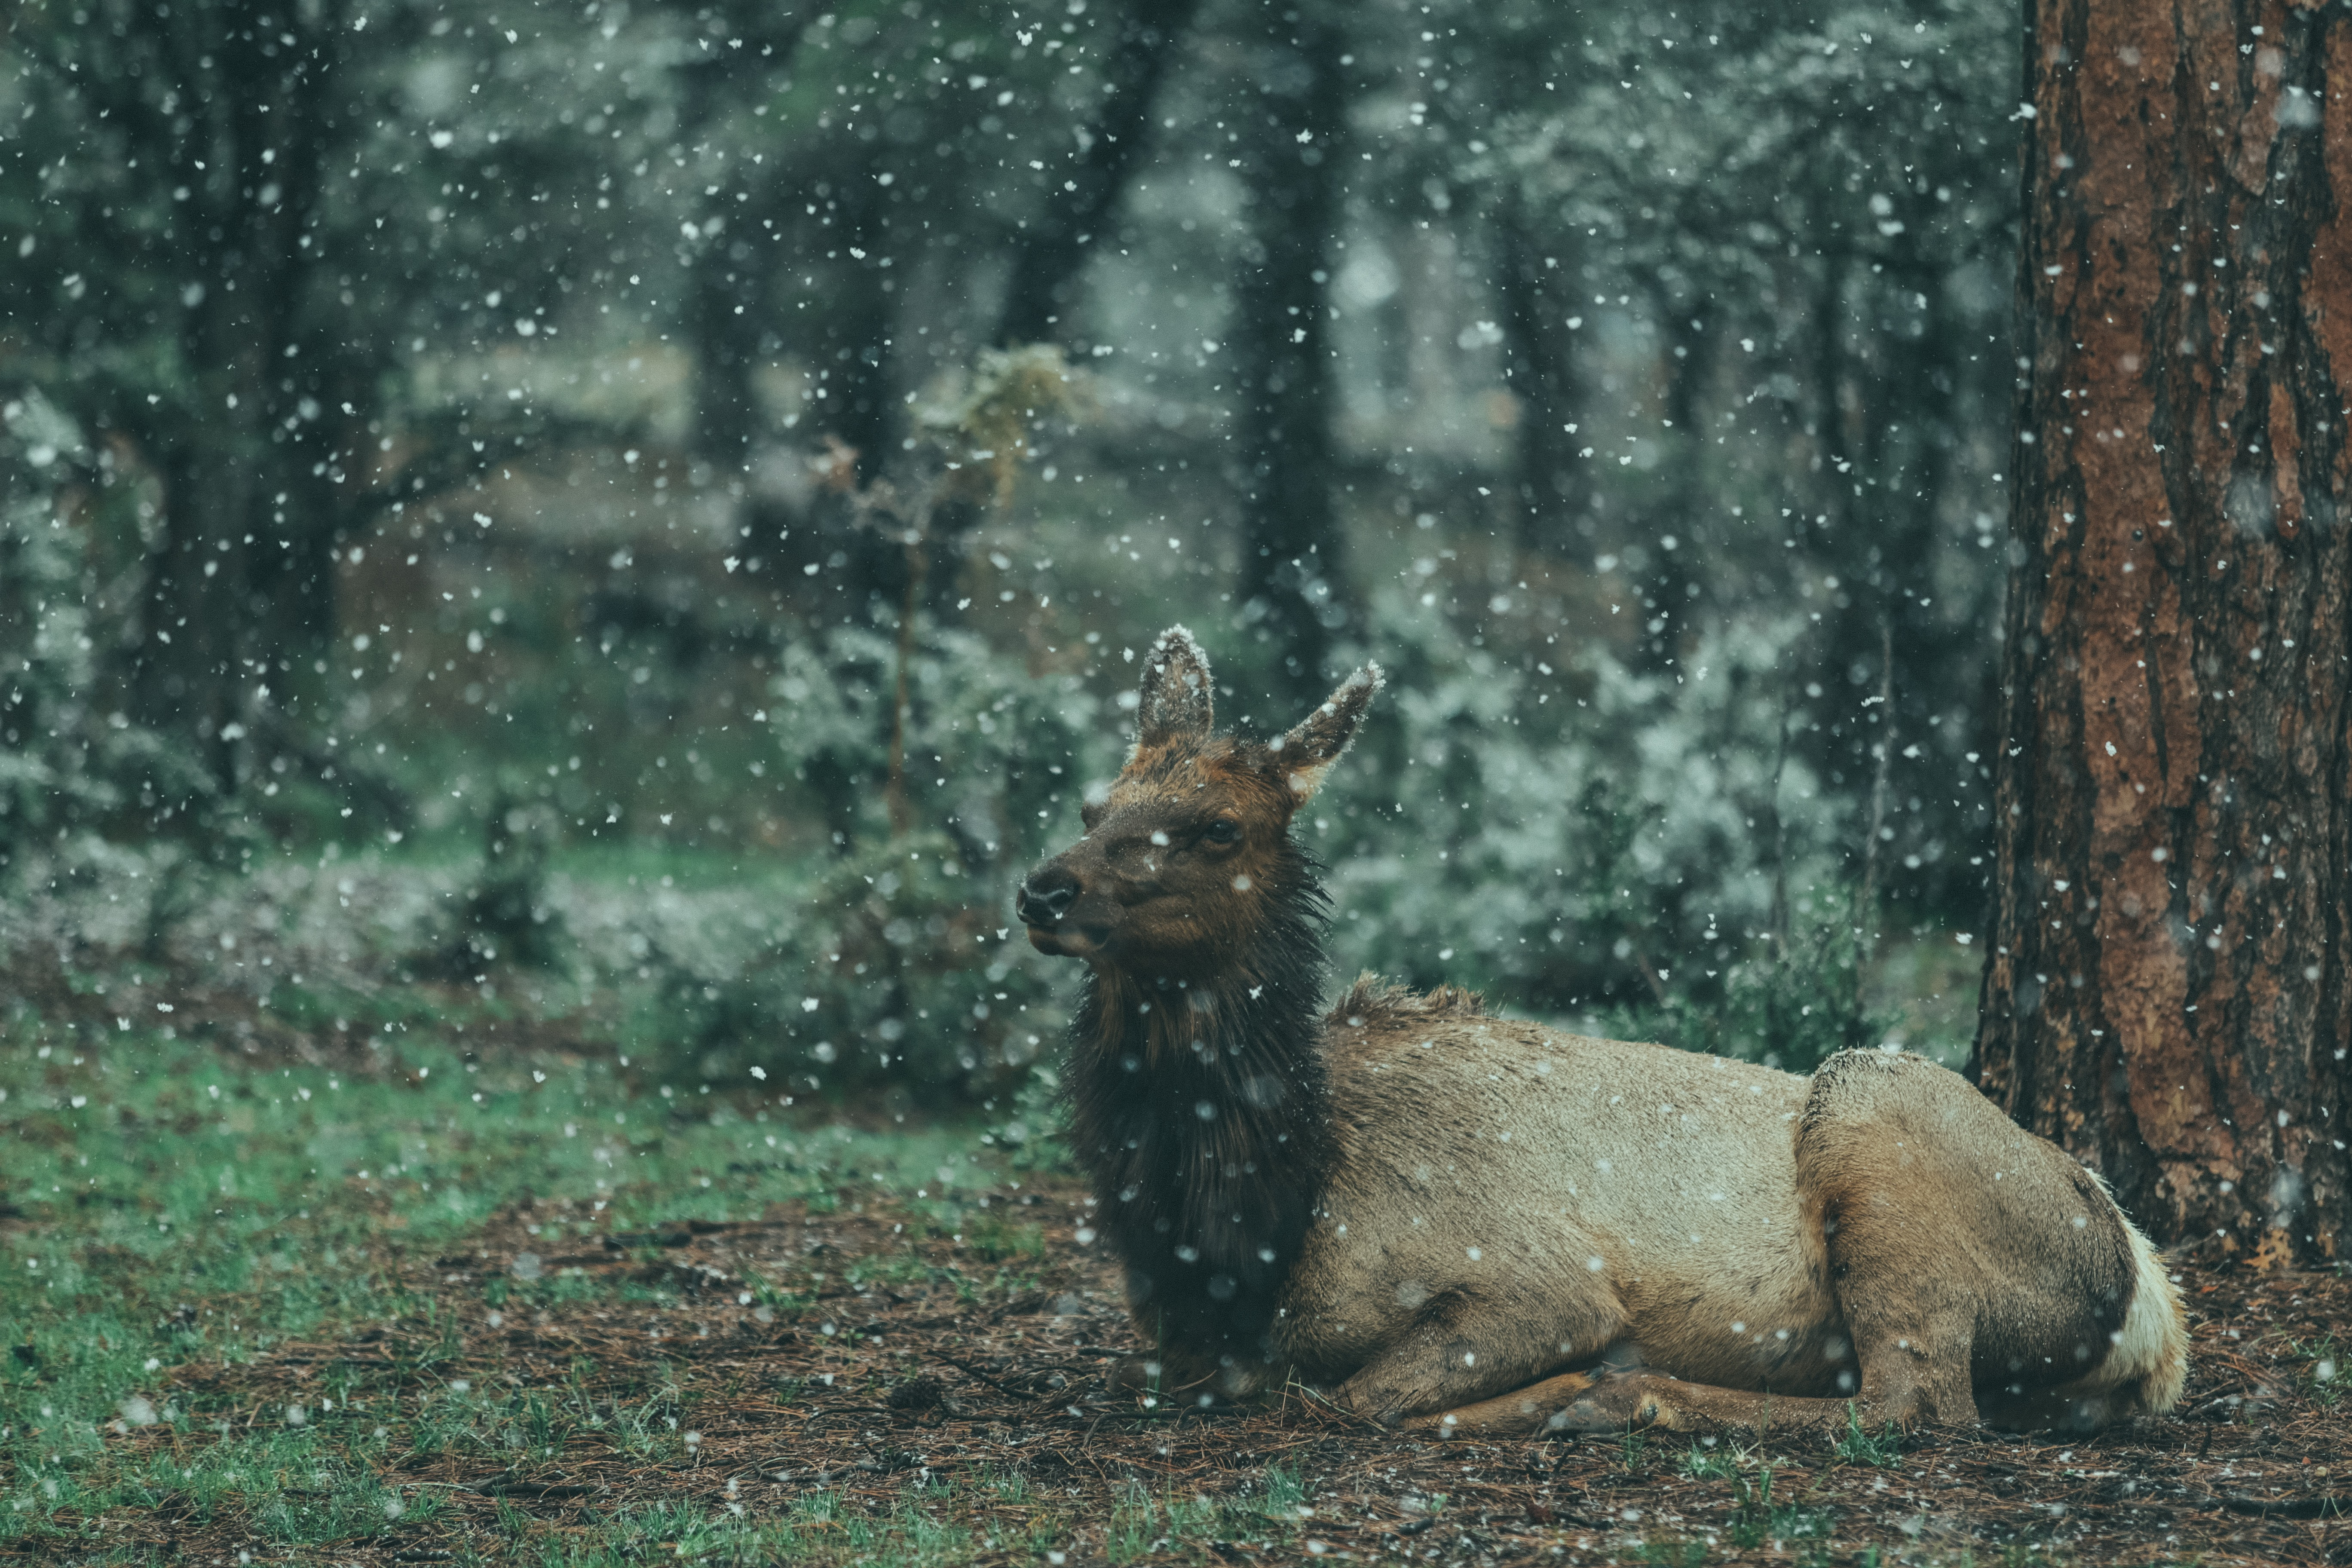 It's snowing on the elk and other animals at Grand Canyon Village